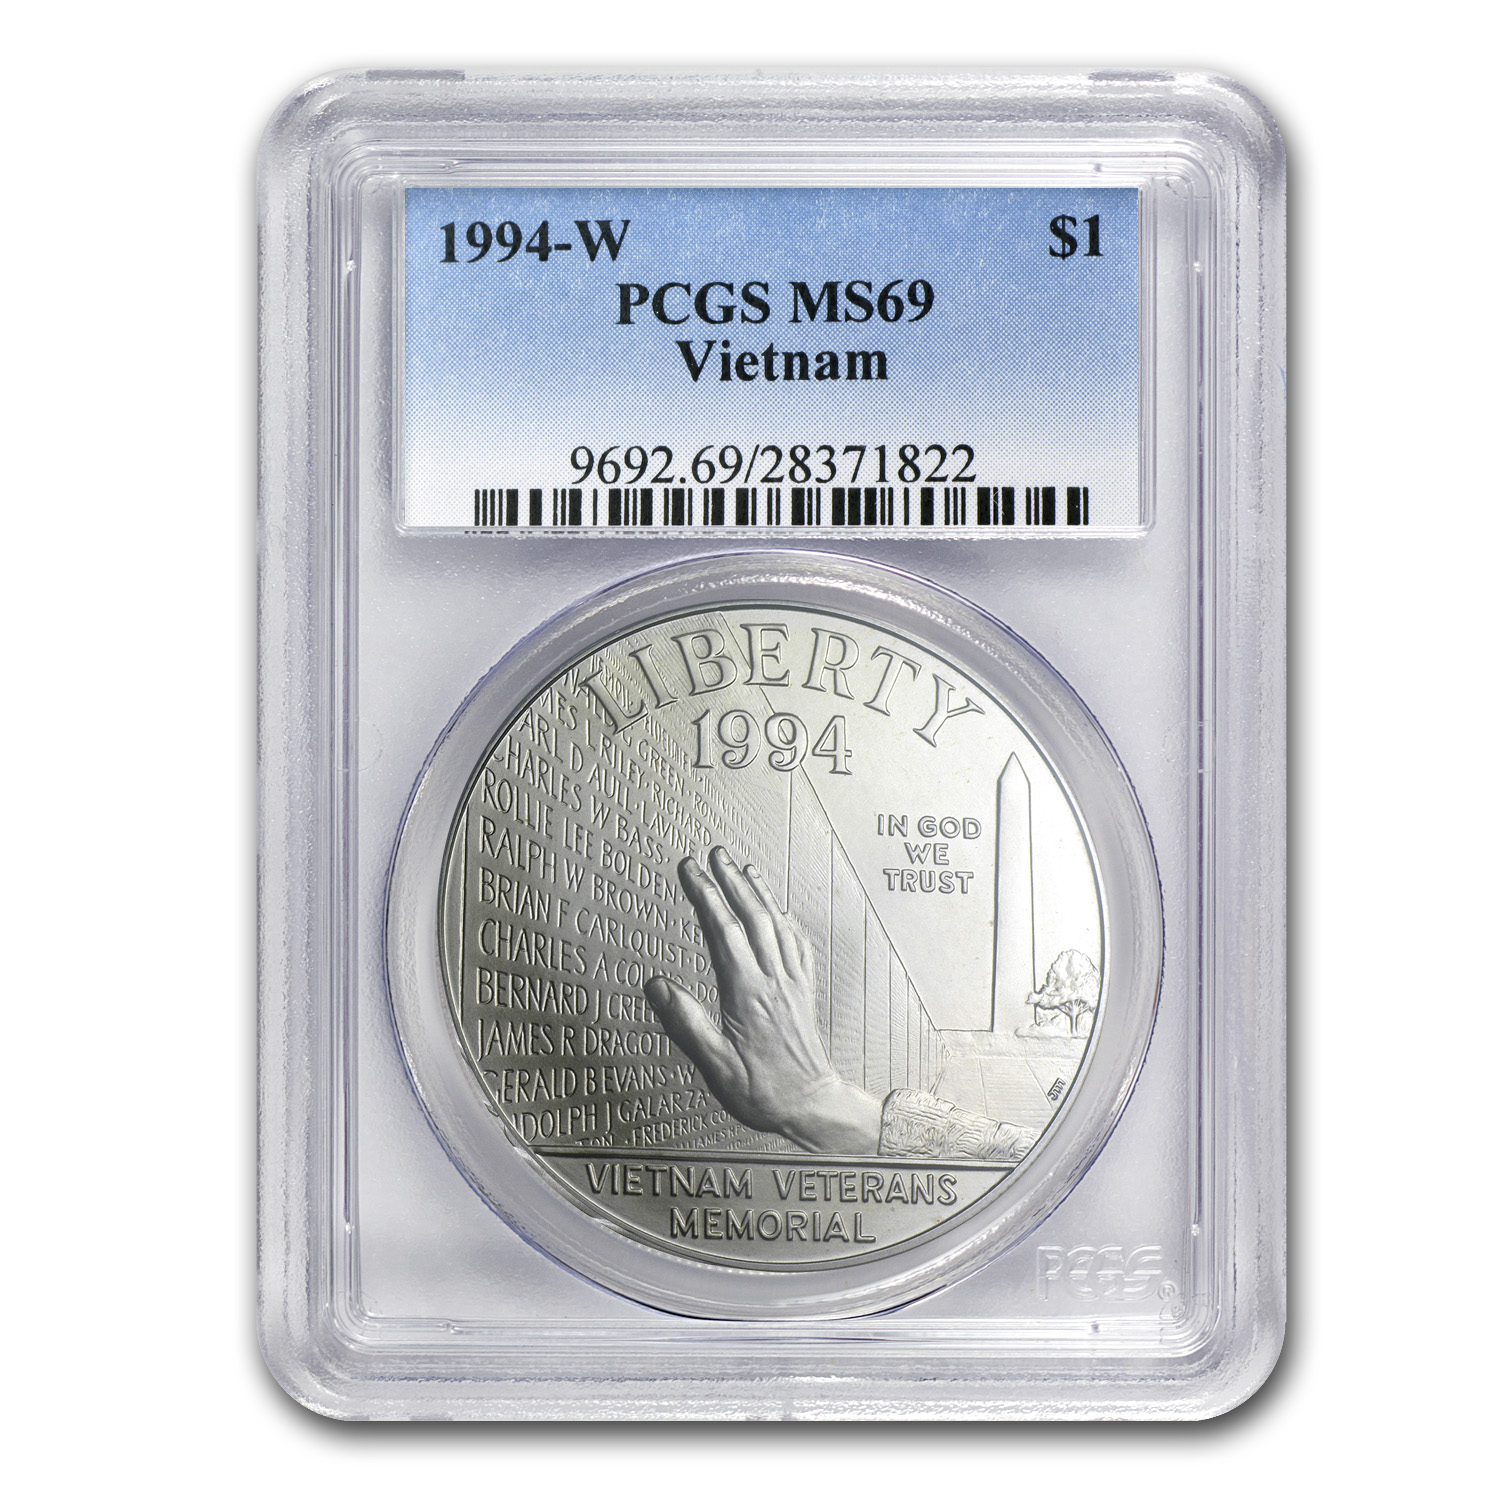 1994-W Vietnam Veterans Memorial $1 Silver Commem MS-69 PCGS